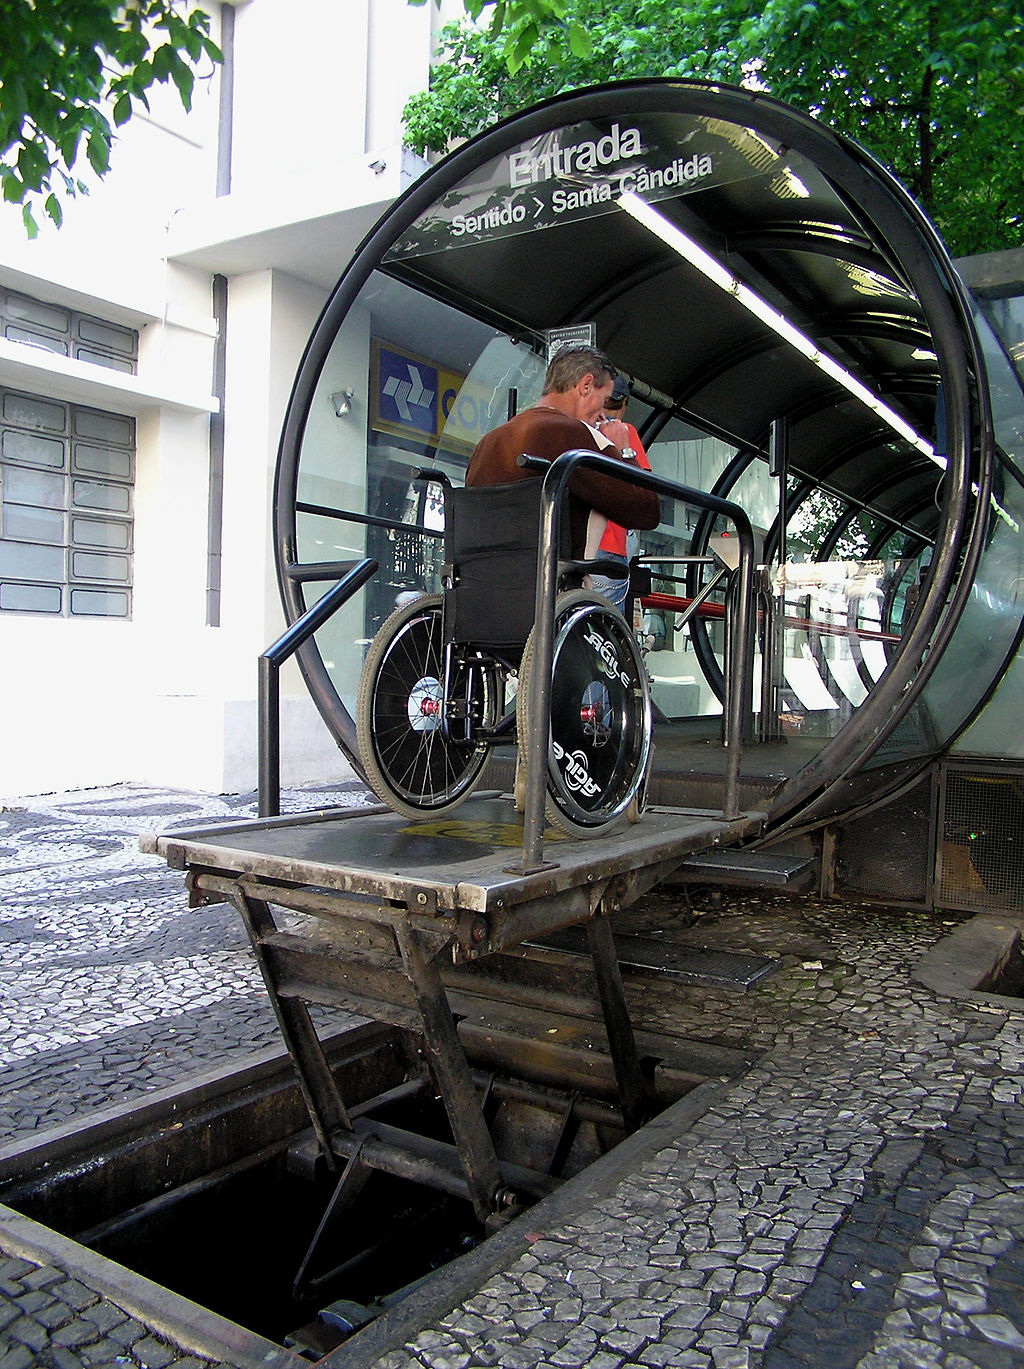 Disability access to the bus stops |© Morio/WikiCommons